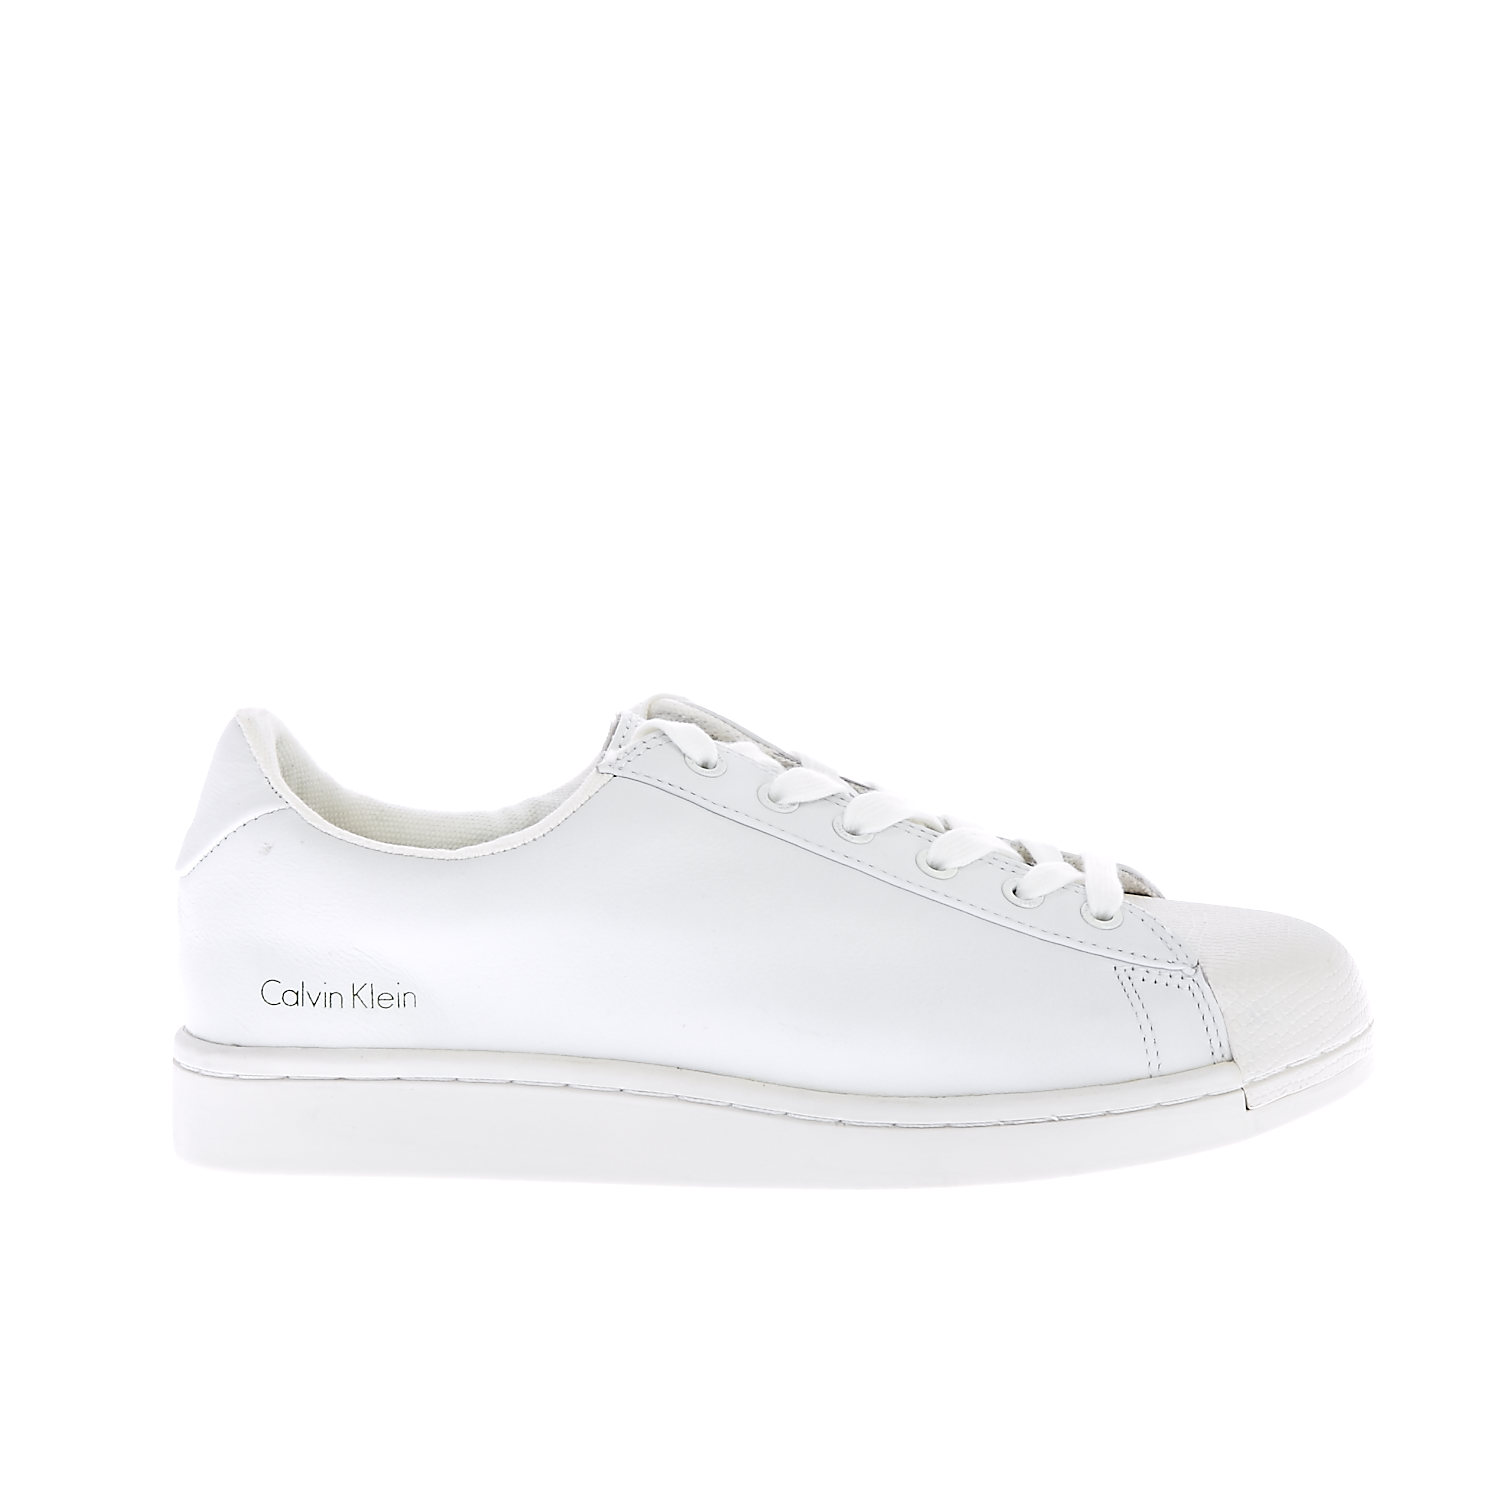 CALVIN KLEIN JEANS - Ανδρικά sneakers CALVIN KLEIN JEANS FELIX λευκά ανδρικά παπούτσια sneakers